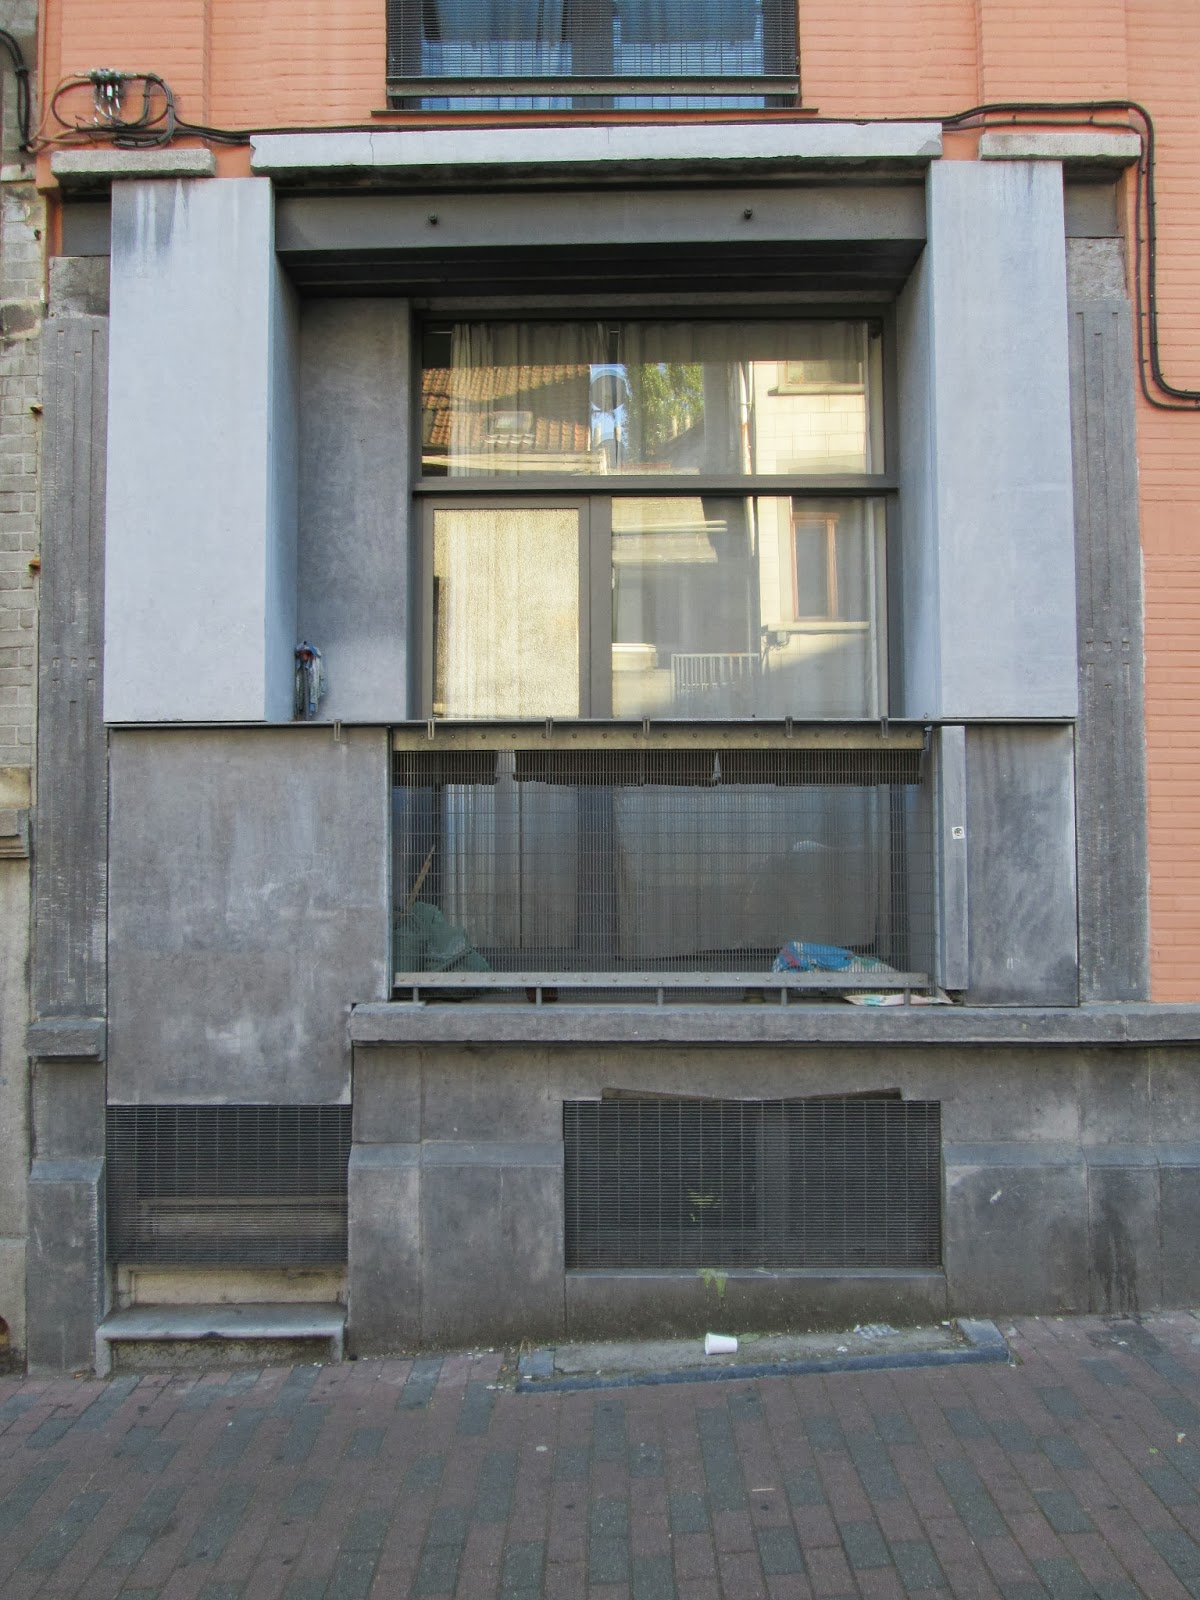 Brussels Plan B: HOW TO MAKE YOUR OWN BALCONY ON GROUND FLOOR